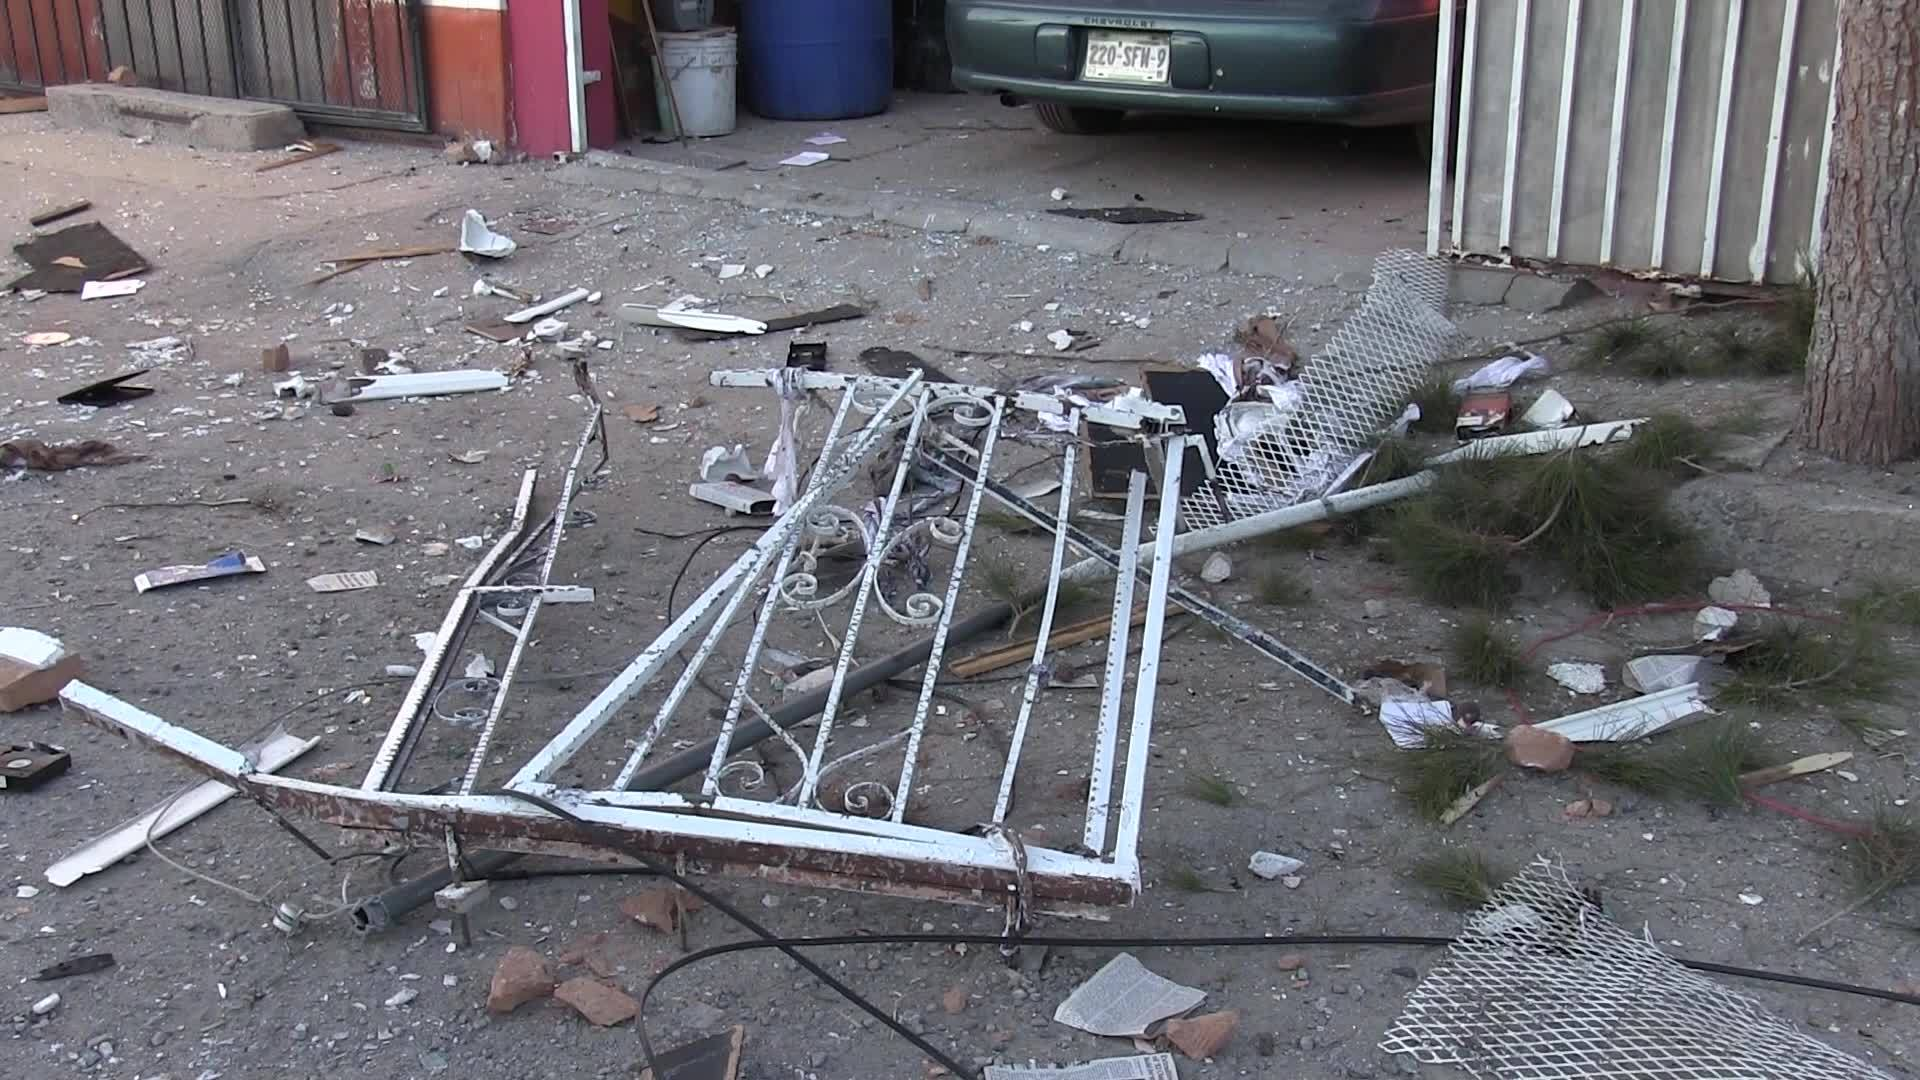 Explosion in Juarez caused while man tried to make coffee